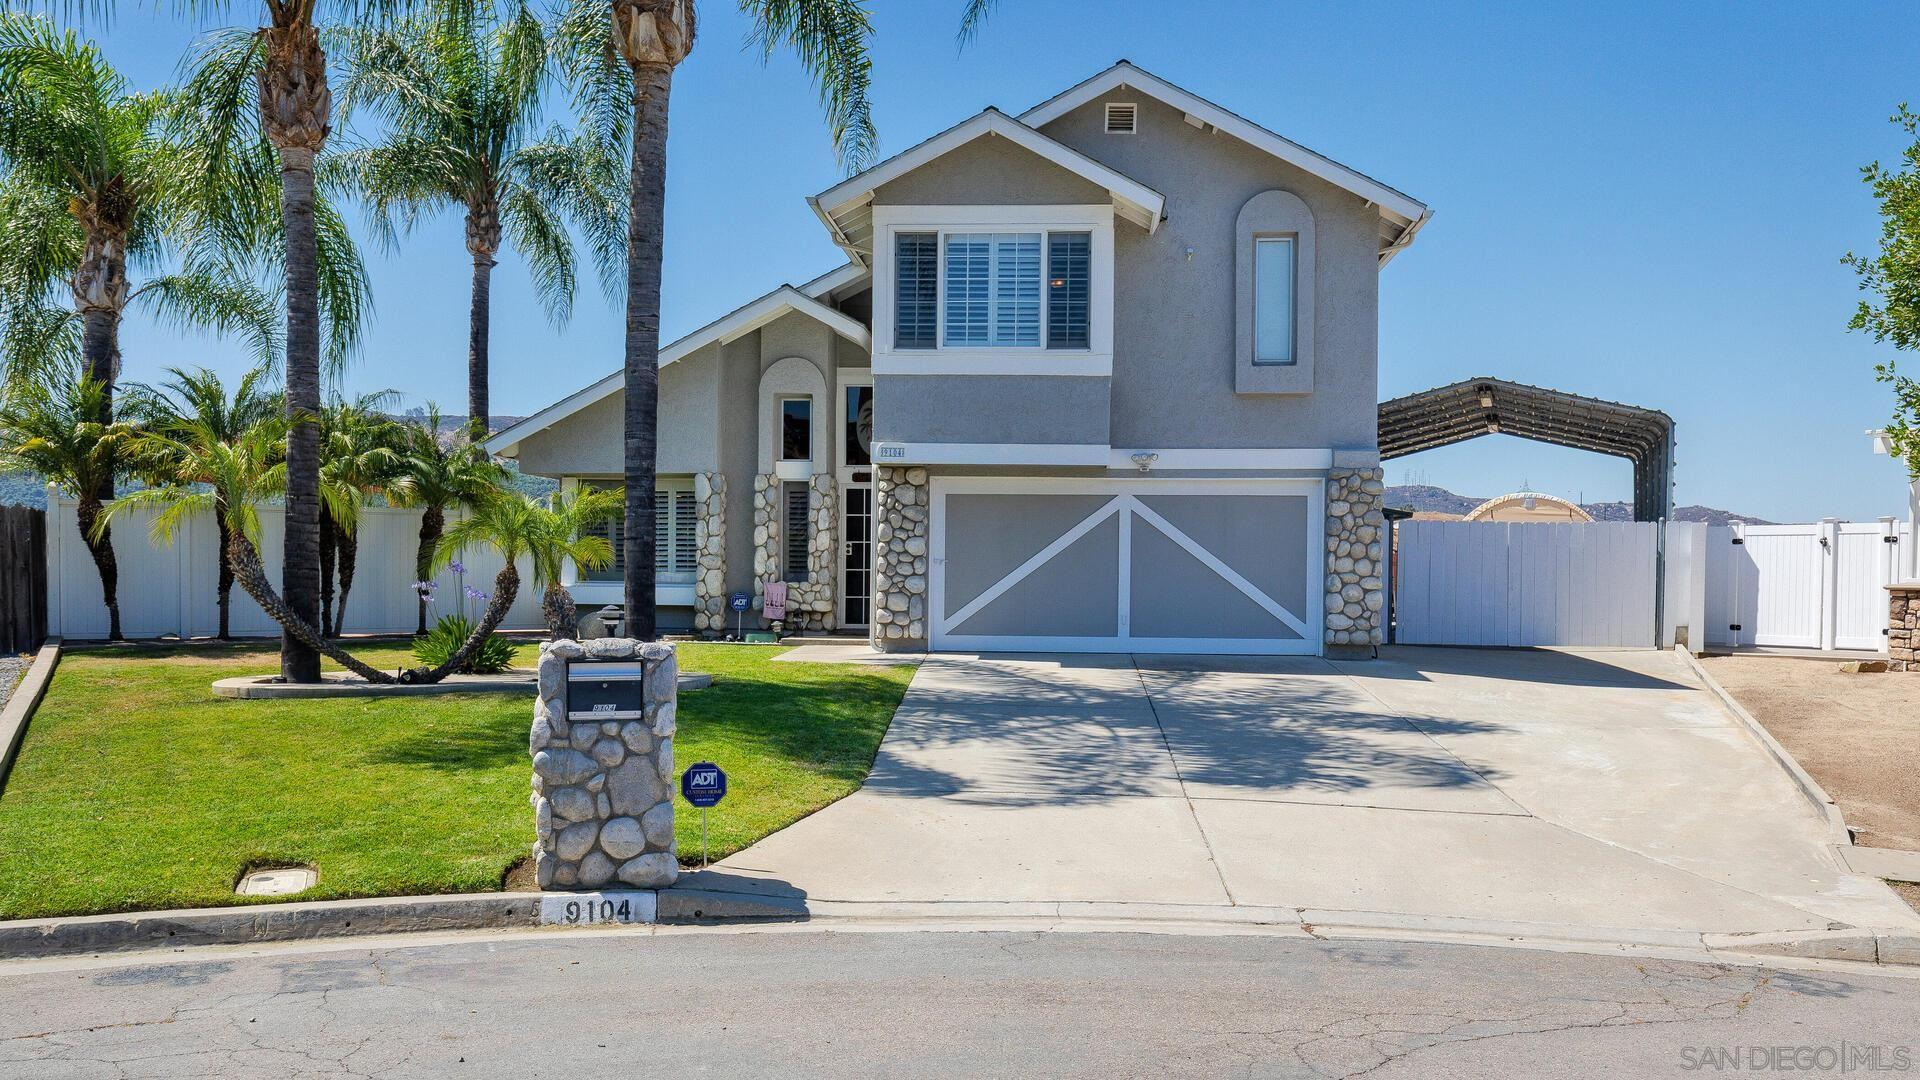 Welcome to 9104 Vista Jennings circle. If you are looking for a home that is turnkey and has been meticulously maintained, then this is it. From top to bottom, this beautiful 4bd, 2.5 bth, 1,973 sqft, two story home has been lovingly cared for and it shows from the second you walk in the front door. Perfectly placed at the top of a quiet cul de sac with a large lot and plenty of covered RV parking for all of your toys, this home is perfect for any family. Also featuring beautiful engineered hardwood and tile flooring in all the right places, vaulted ceilings that welcome you in as you enter the main living / dining room combo, separate family room with breakfast area and beautiful fireplace, stunning updated kitchen w/ granite counter tops and stainless steel appliances, recently update 1/2 bath, large master suite w/ separate shower and jetted tub, a private balcony off of the spare bedroom over looks the sparkling saltwater pool /spa and allows you to enjoy the surrounding mountain views, outside bar area w/ wood fire pizza oven that is perfect for entertaining family and friends, Solar pool heater keeps the pool at the perfect temperature, full house solar system that is set up on a fixed power purchase agreement at only 15 cent per kh., large enclosed canvas car shed and even more. As you can see this home has it all and is ready for a new family to enjoy.Welcome to 9104 Vista Jennings circle. If you are looking for a home that is turnkey and has been meticulously maintained, then this is it. From top to bottom, this beautiful 4bd, 2.5 bth, 1,973 sqft, two story home has been lovingly cared for and it shows from the second you walk in the front door. Perfectly placed at the top of a quiet cul de sac with a large lot and plenty of covered RV parking for all of your toys, this home is perfect for any family. Also featuring beautiful engineered hardwood and tile flooring in all the right places, vaulted ceilings that welcome you in as you enter the main living / di